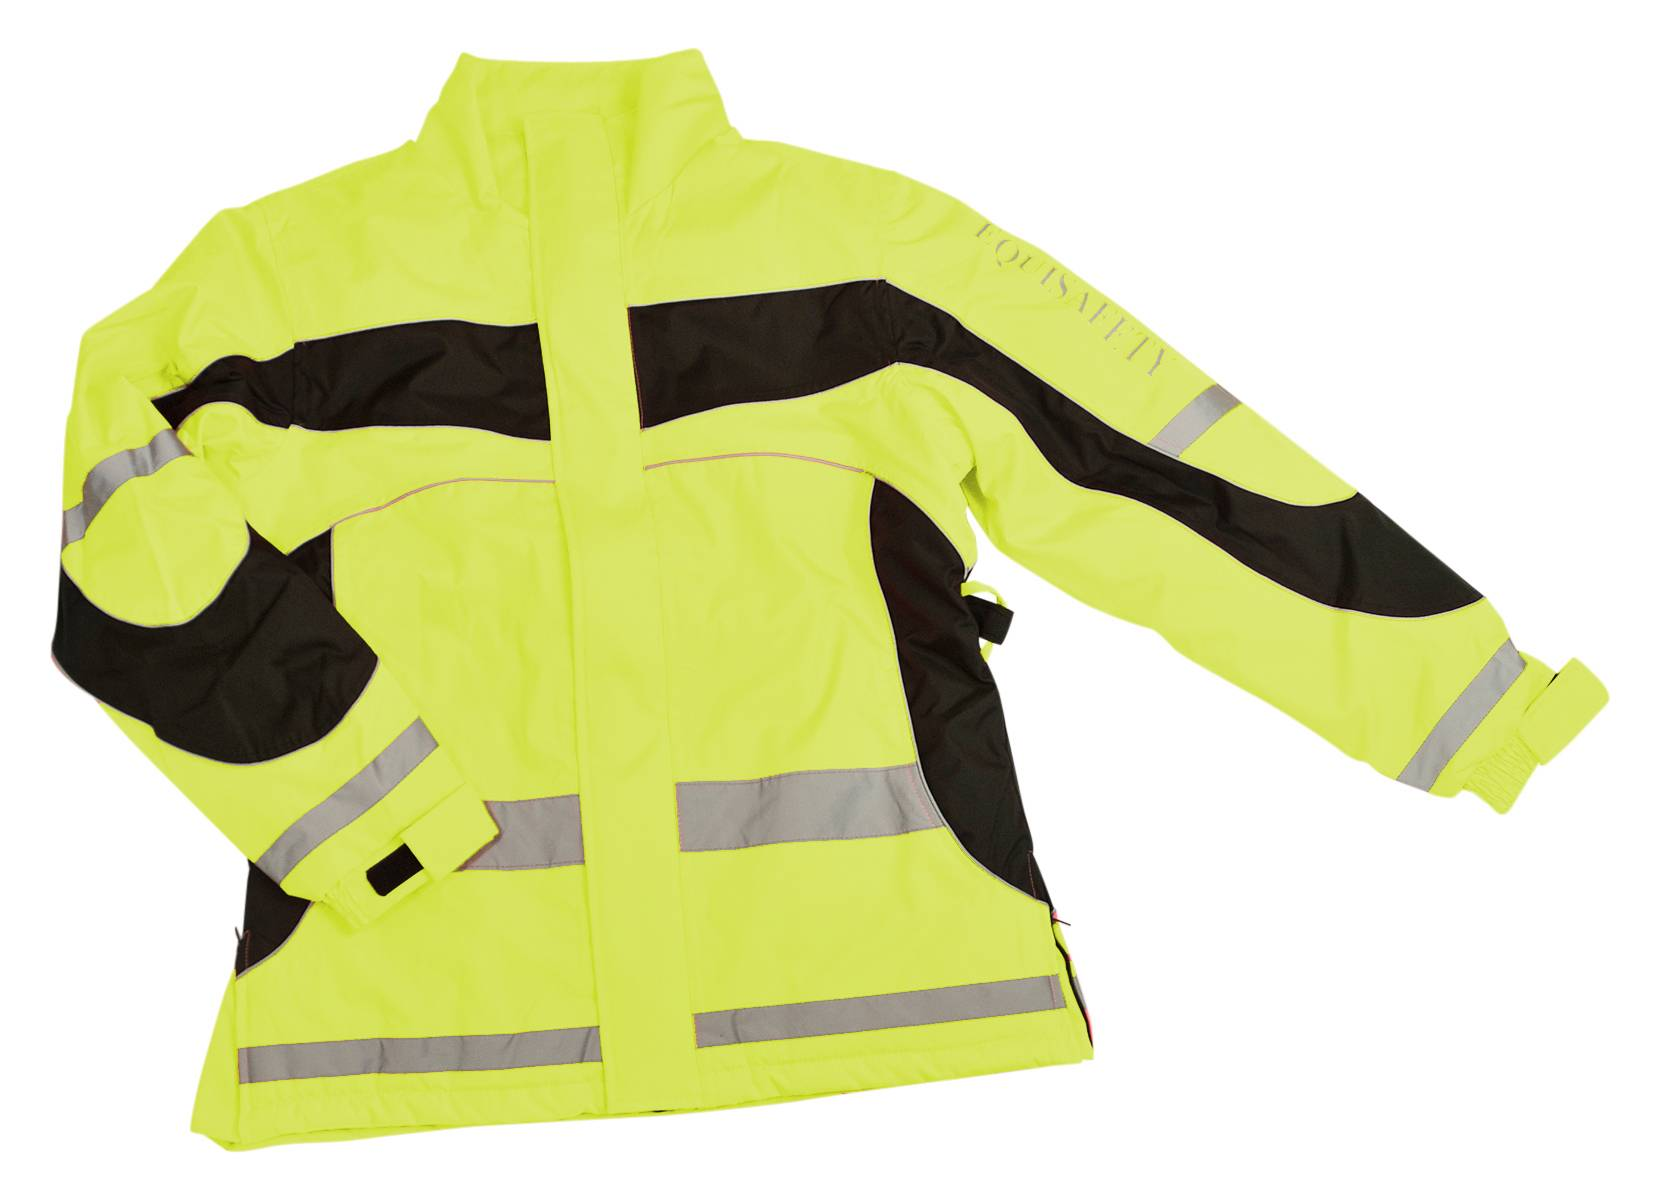 Equisafety Reflective Aspey Jacket